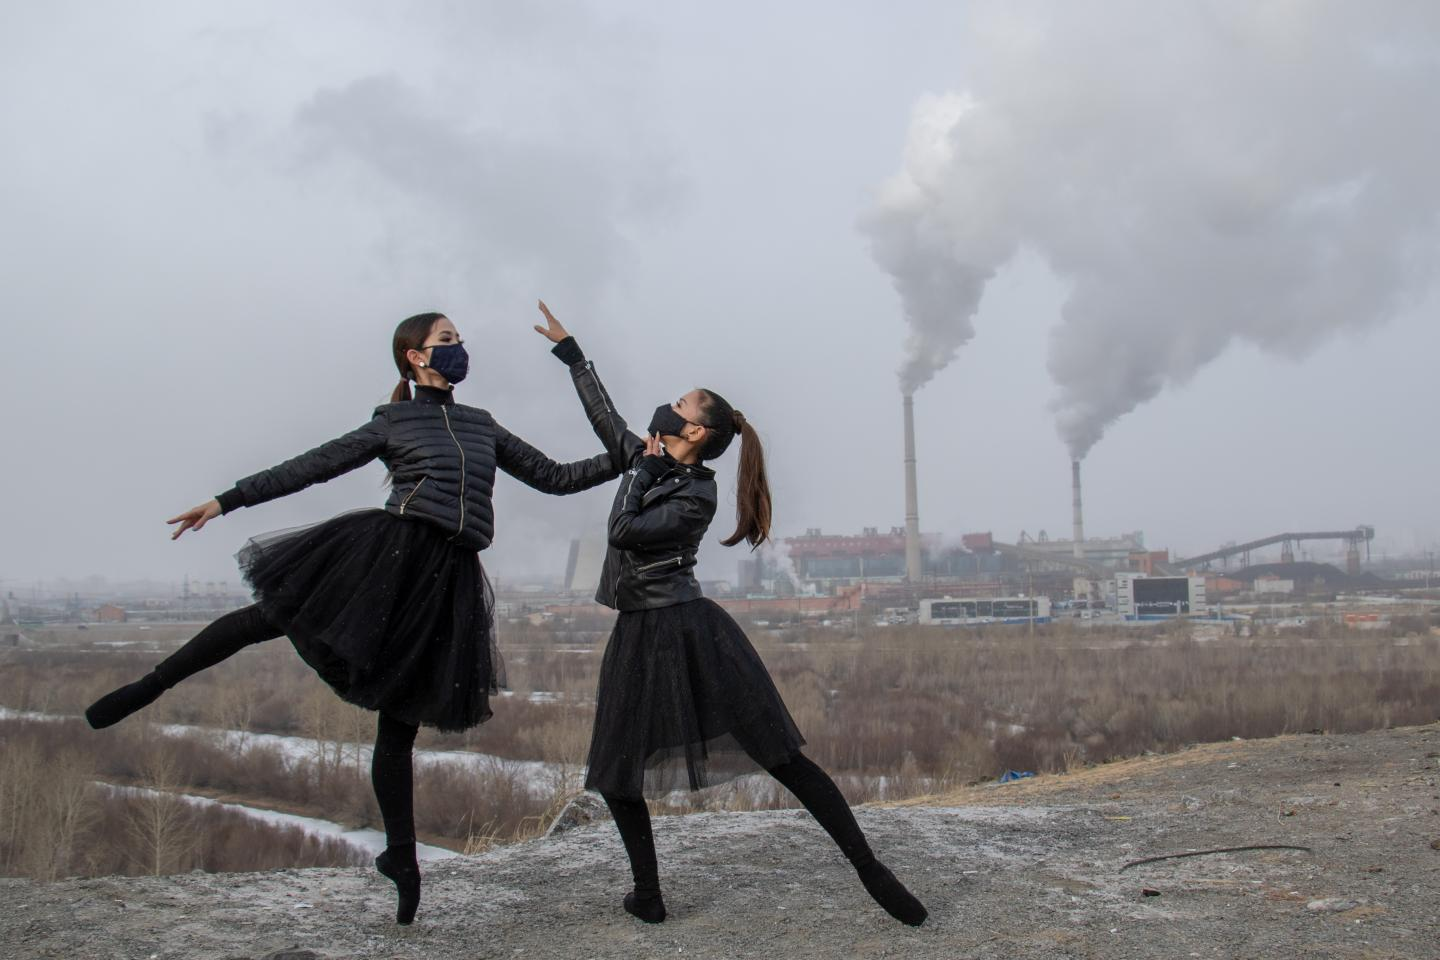 How do you fight air pollution in Mongolia? Start with ballet | UNICEF